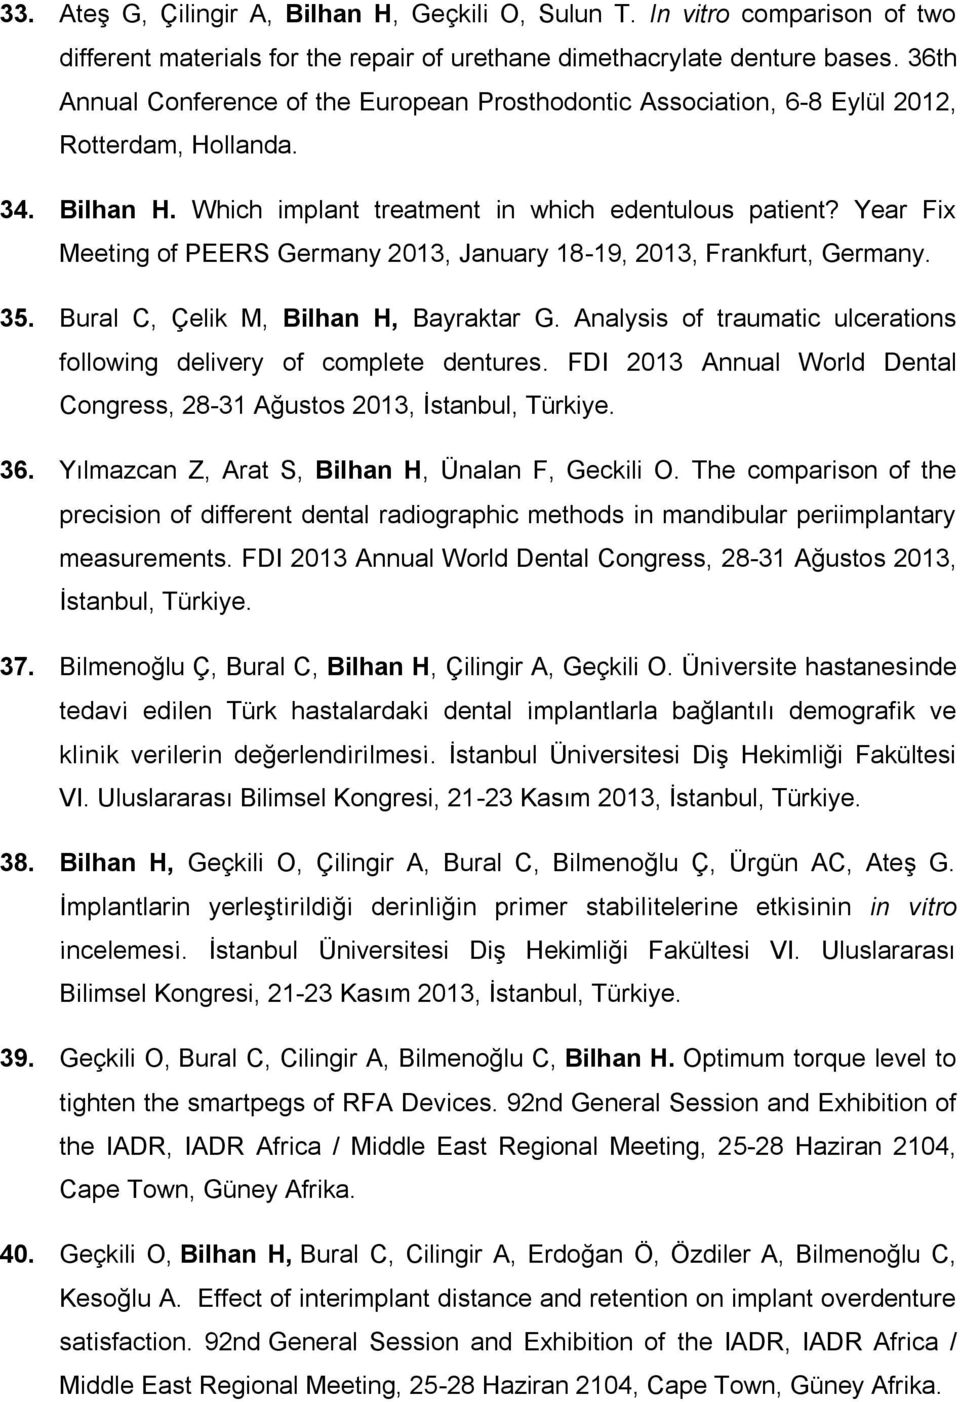 Year Fix Meeting of PEERS Germany 2013, January 18-19, 2013, Frankfurt, Germany. 35. Bural C, Çelik M, Bilhan H, Bayraktar G. Analysis of traumatic ulcerations following delivery of complete dentures.